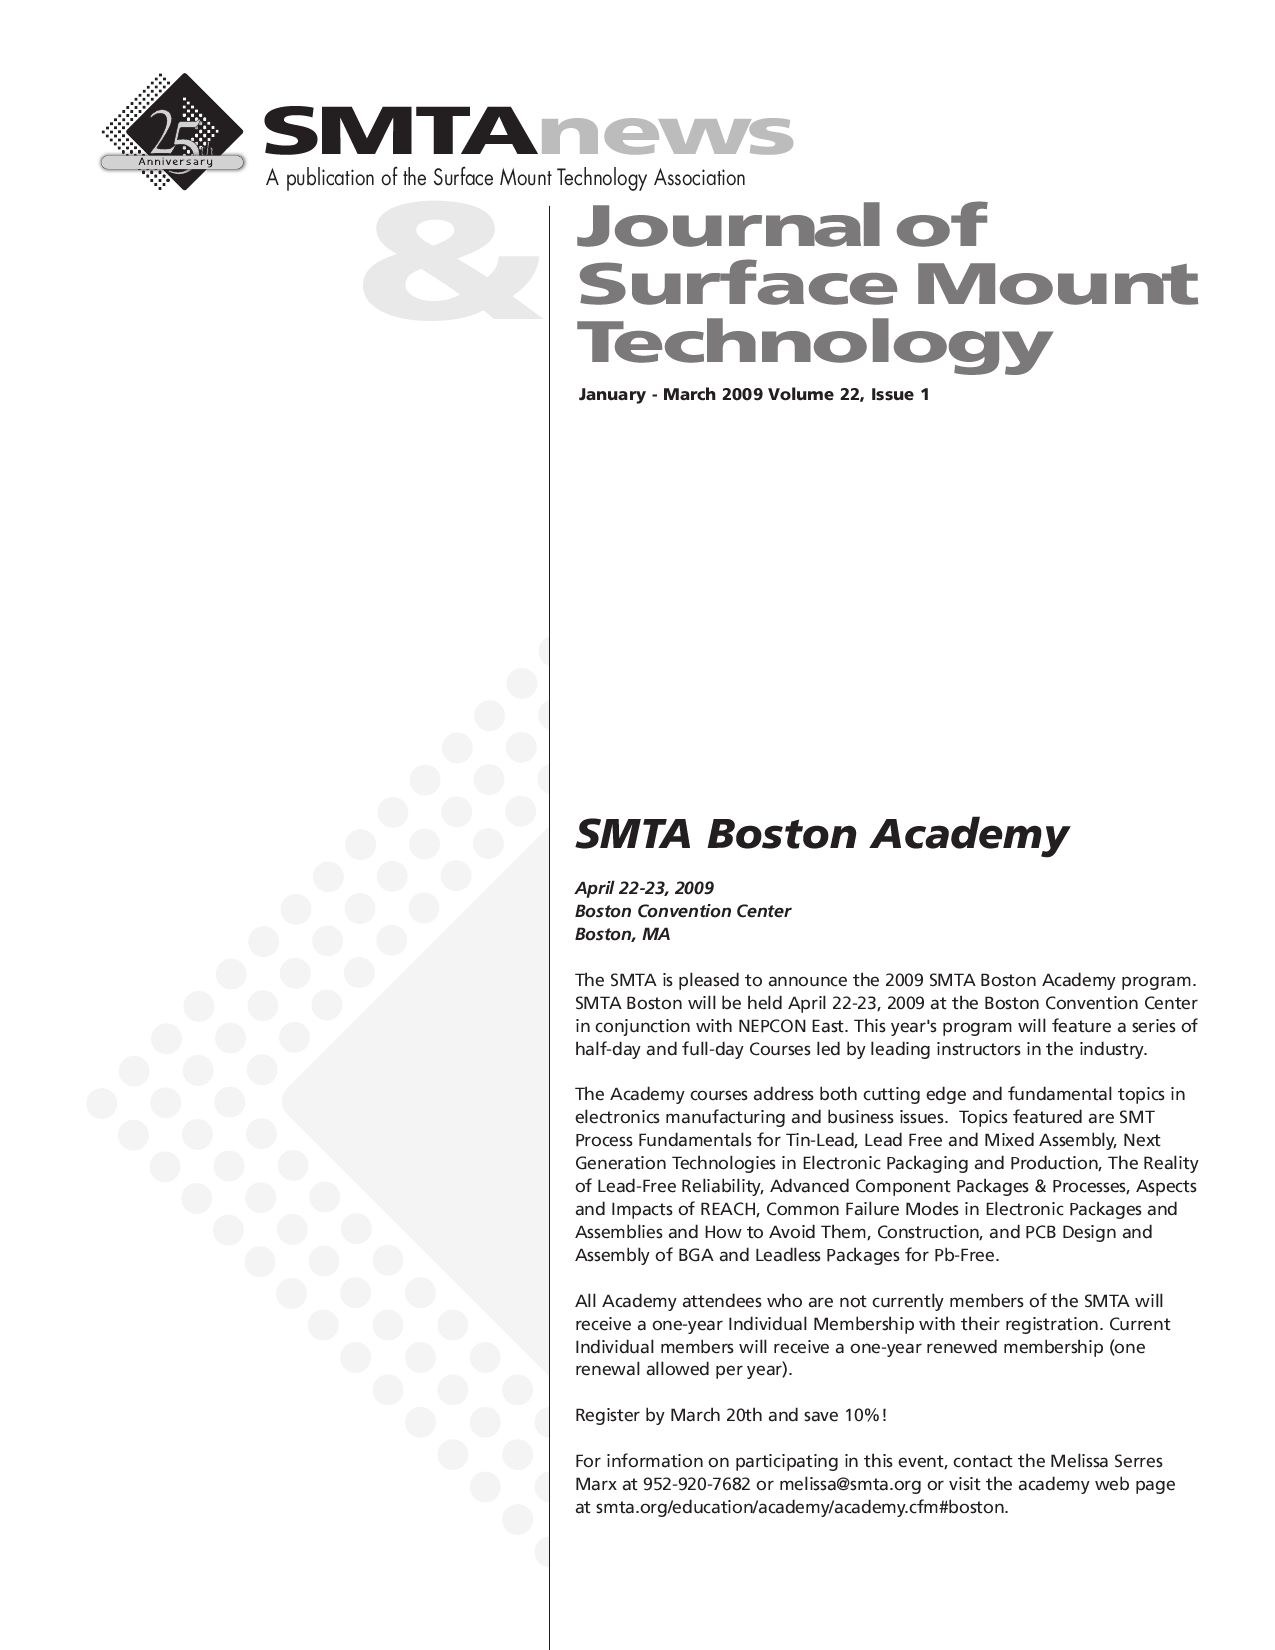 Smtanews And Journal Of Smt Volume 22 Issue 1 By Surface Mount Bga Pcb 8 Layers Printed Circuit Board Ourpcb Technology Association Issuu